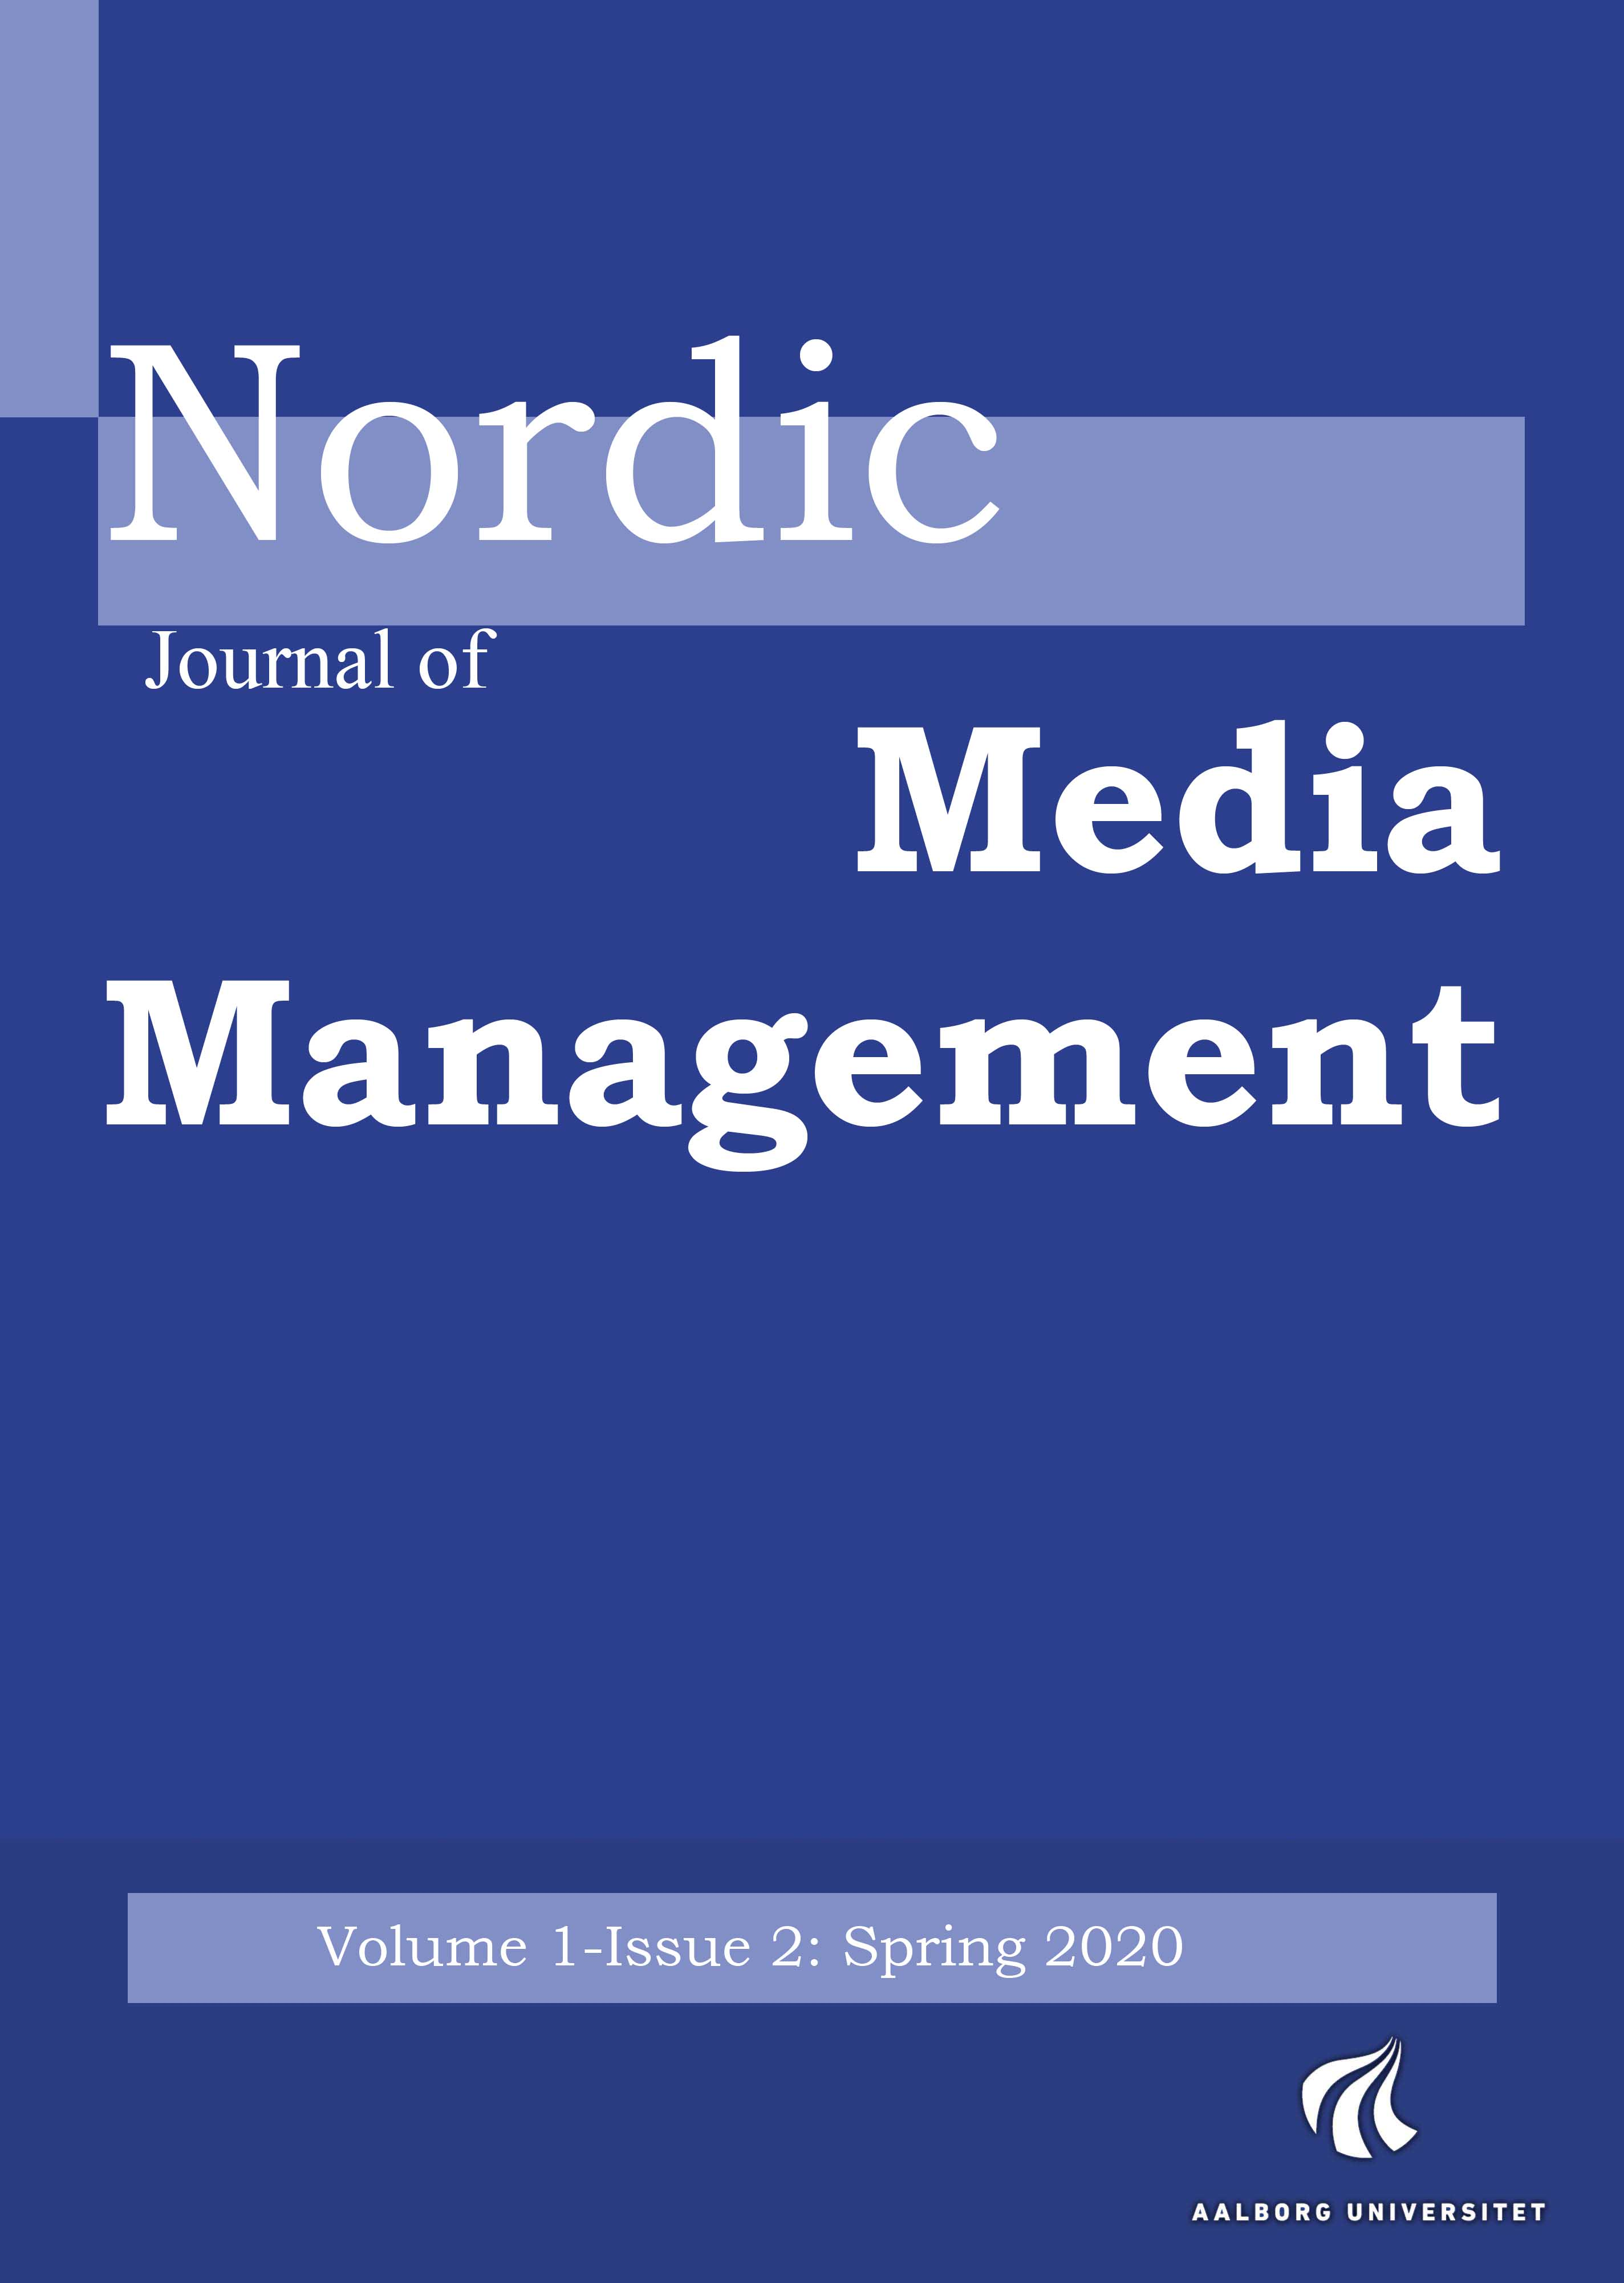 Nordic Journal of Media Management 1(2)